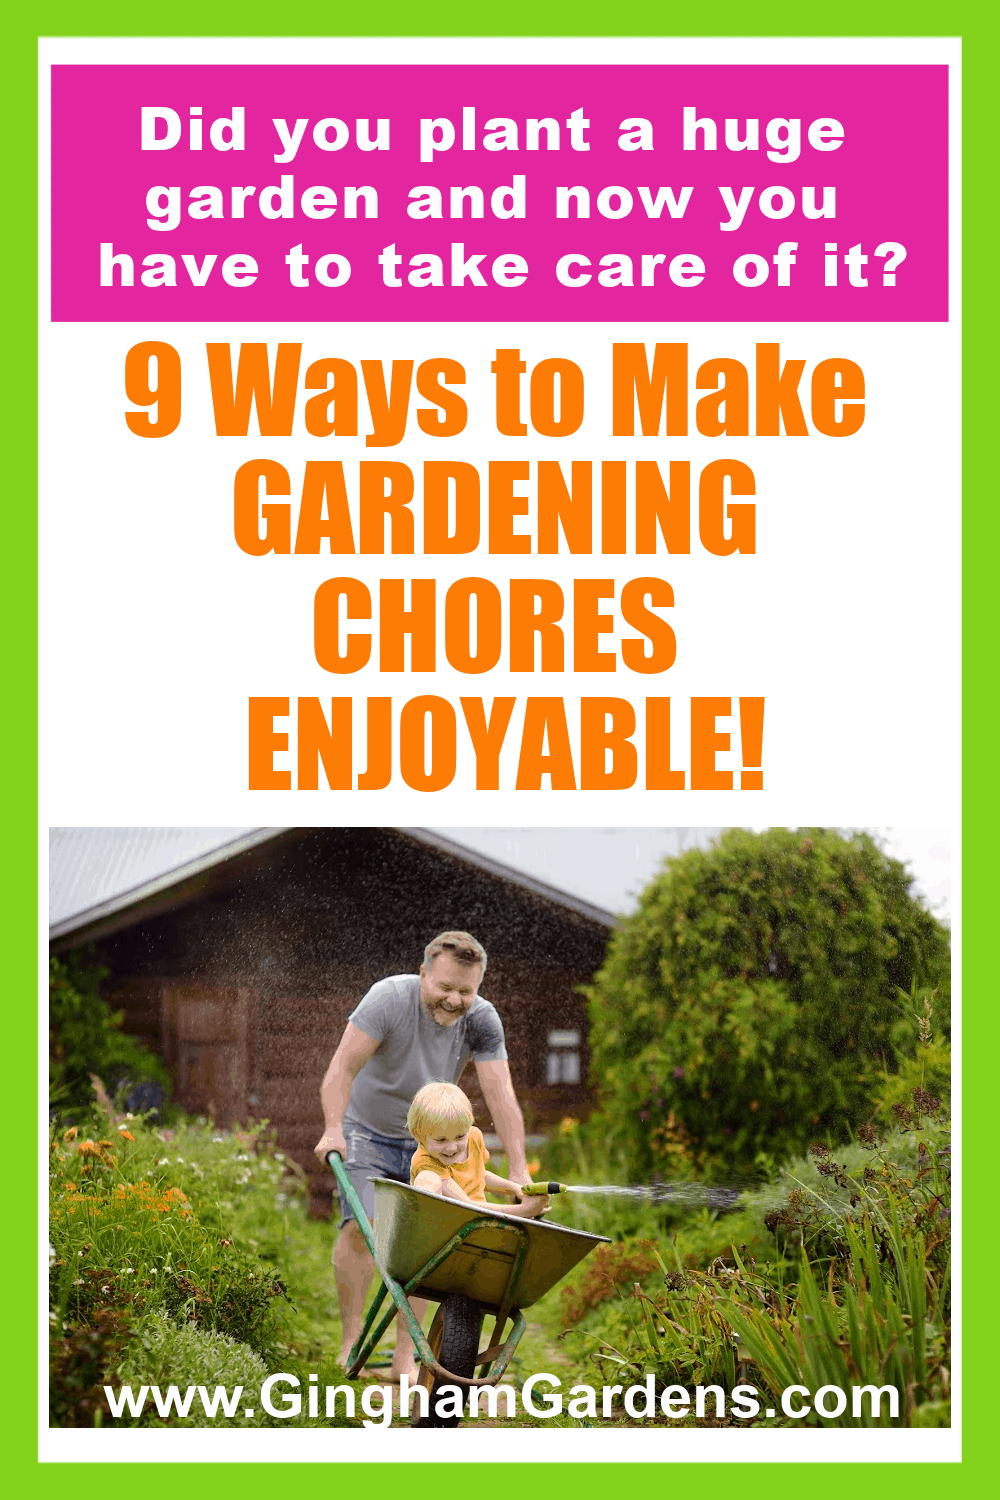 Images of Gardeners working in Gardens with text overlay - 9 Ways to Make Gardening Chores Enjoyable